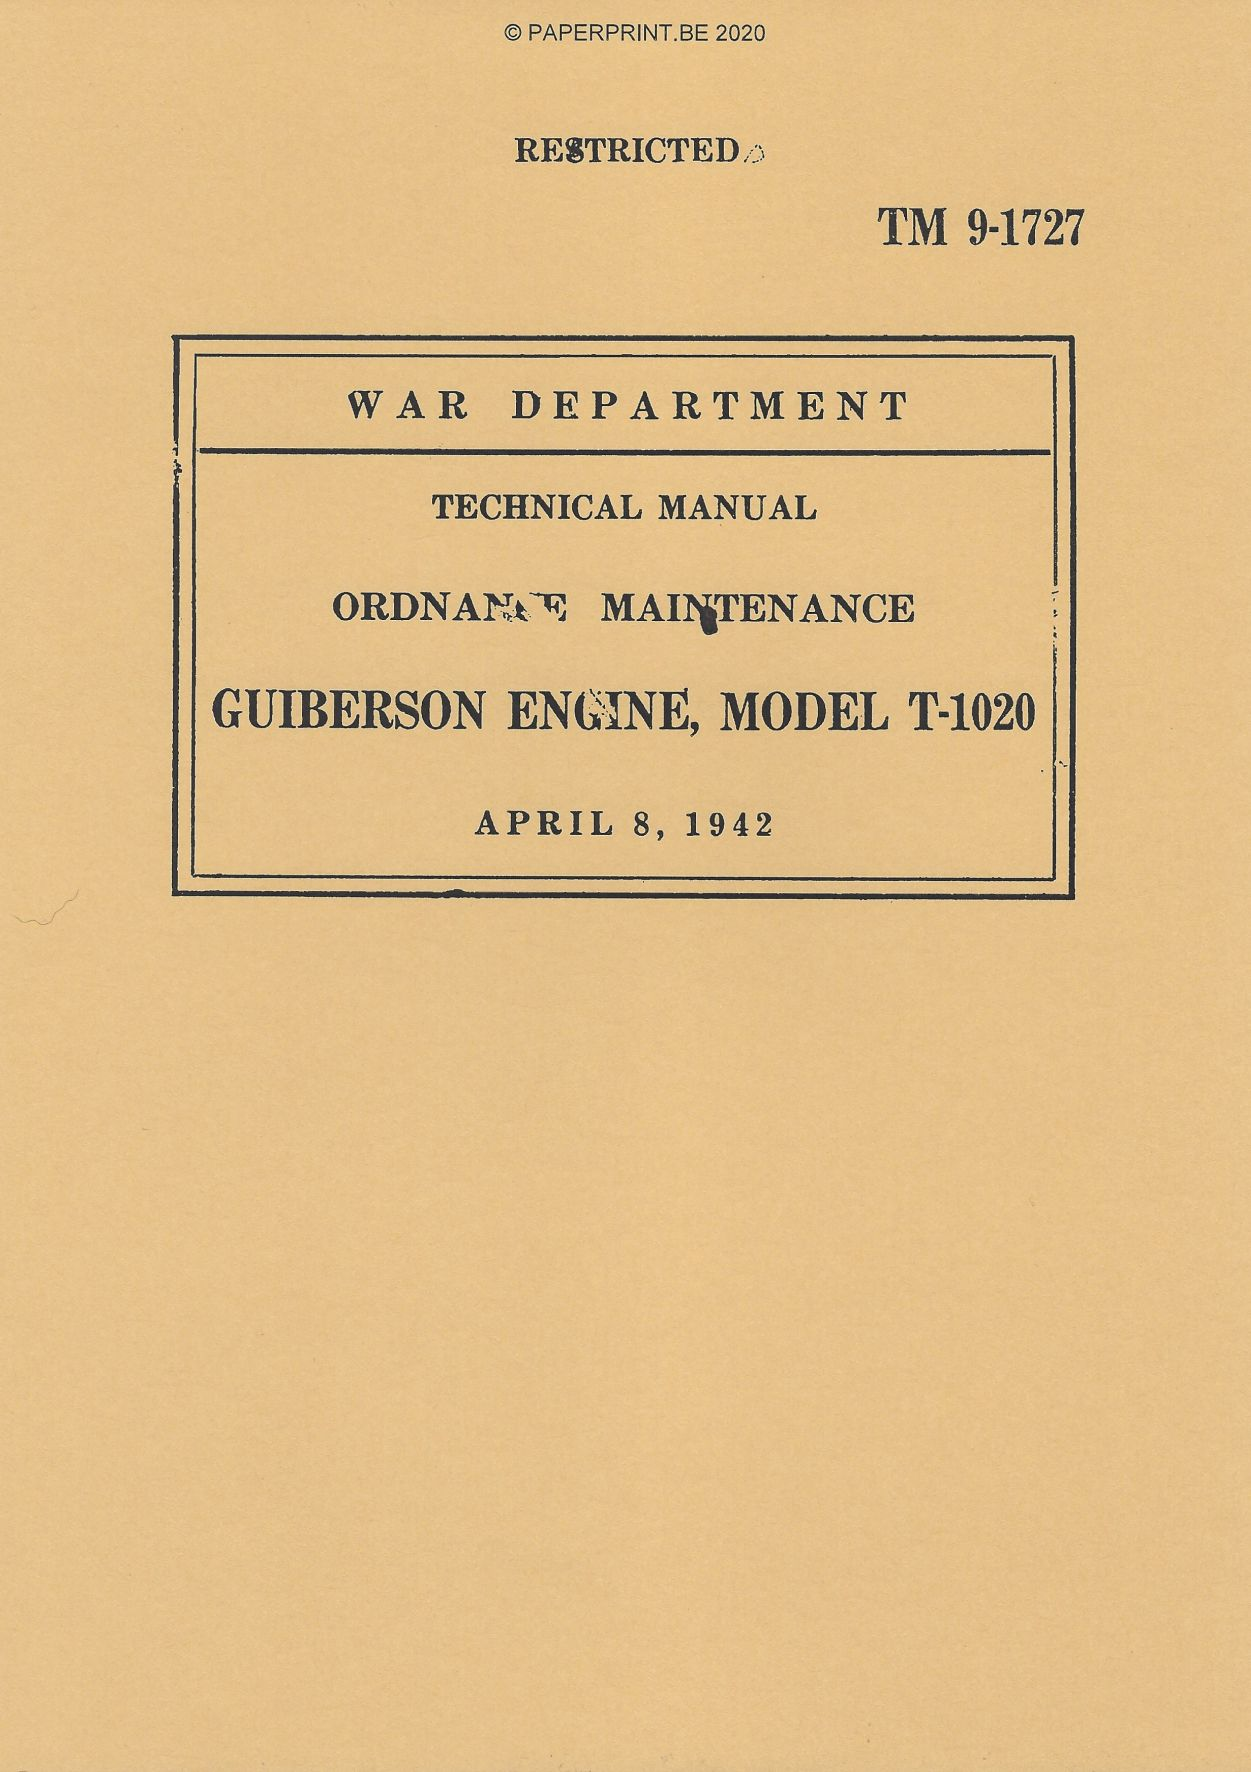 TM 9-1727 US GUIBERSON ENGINE, MODEL T-1020